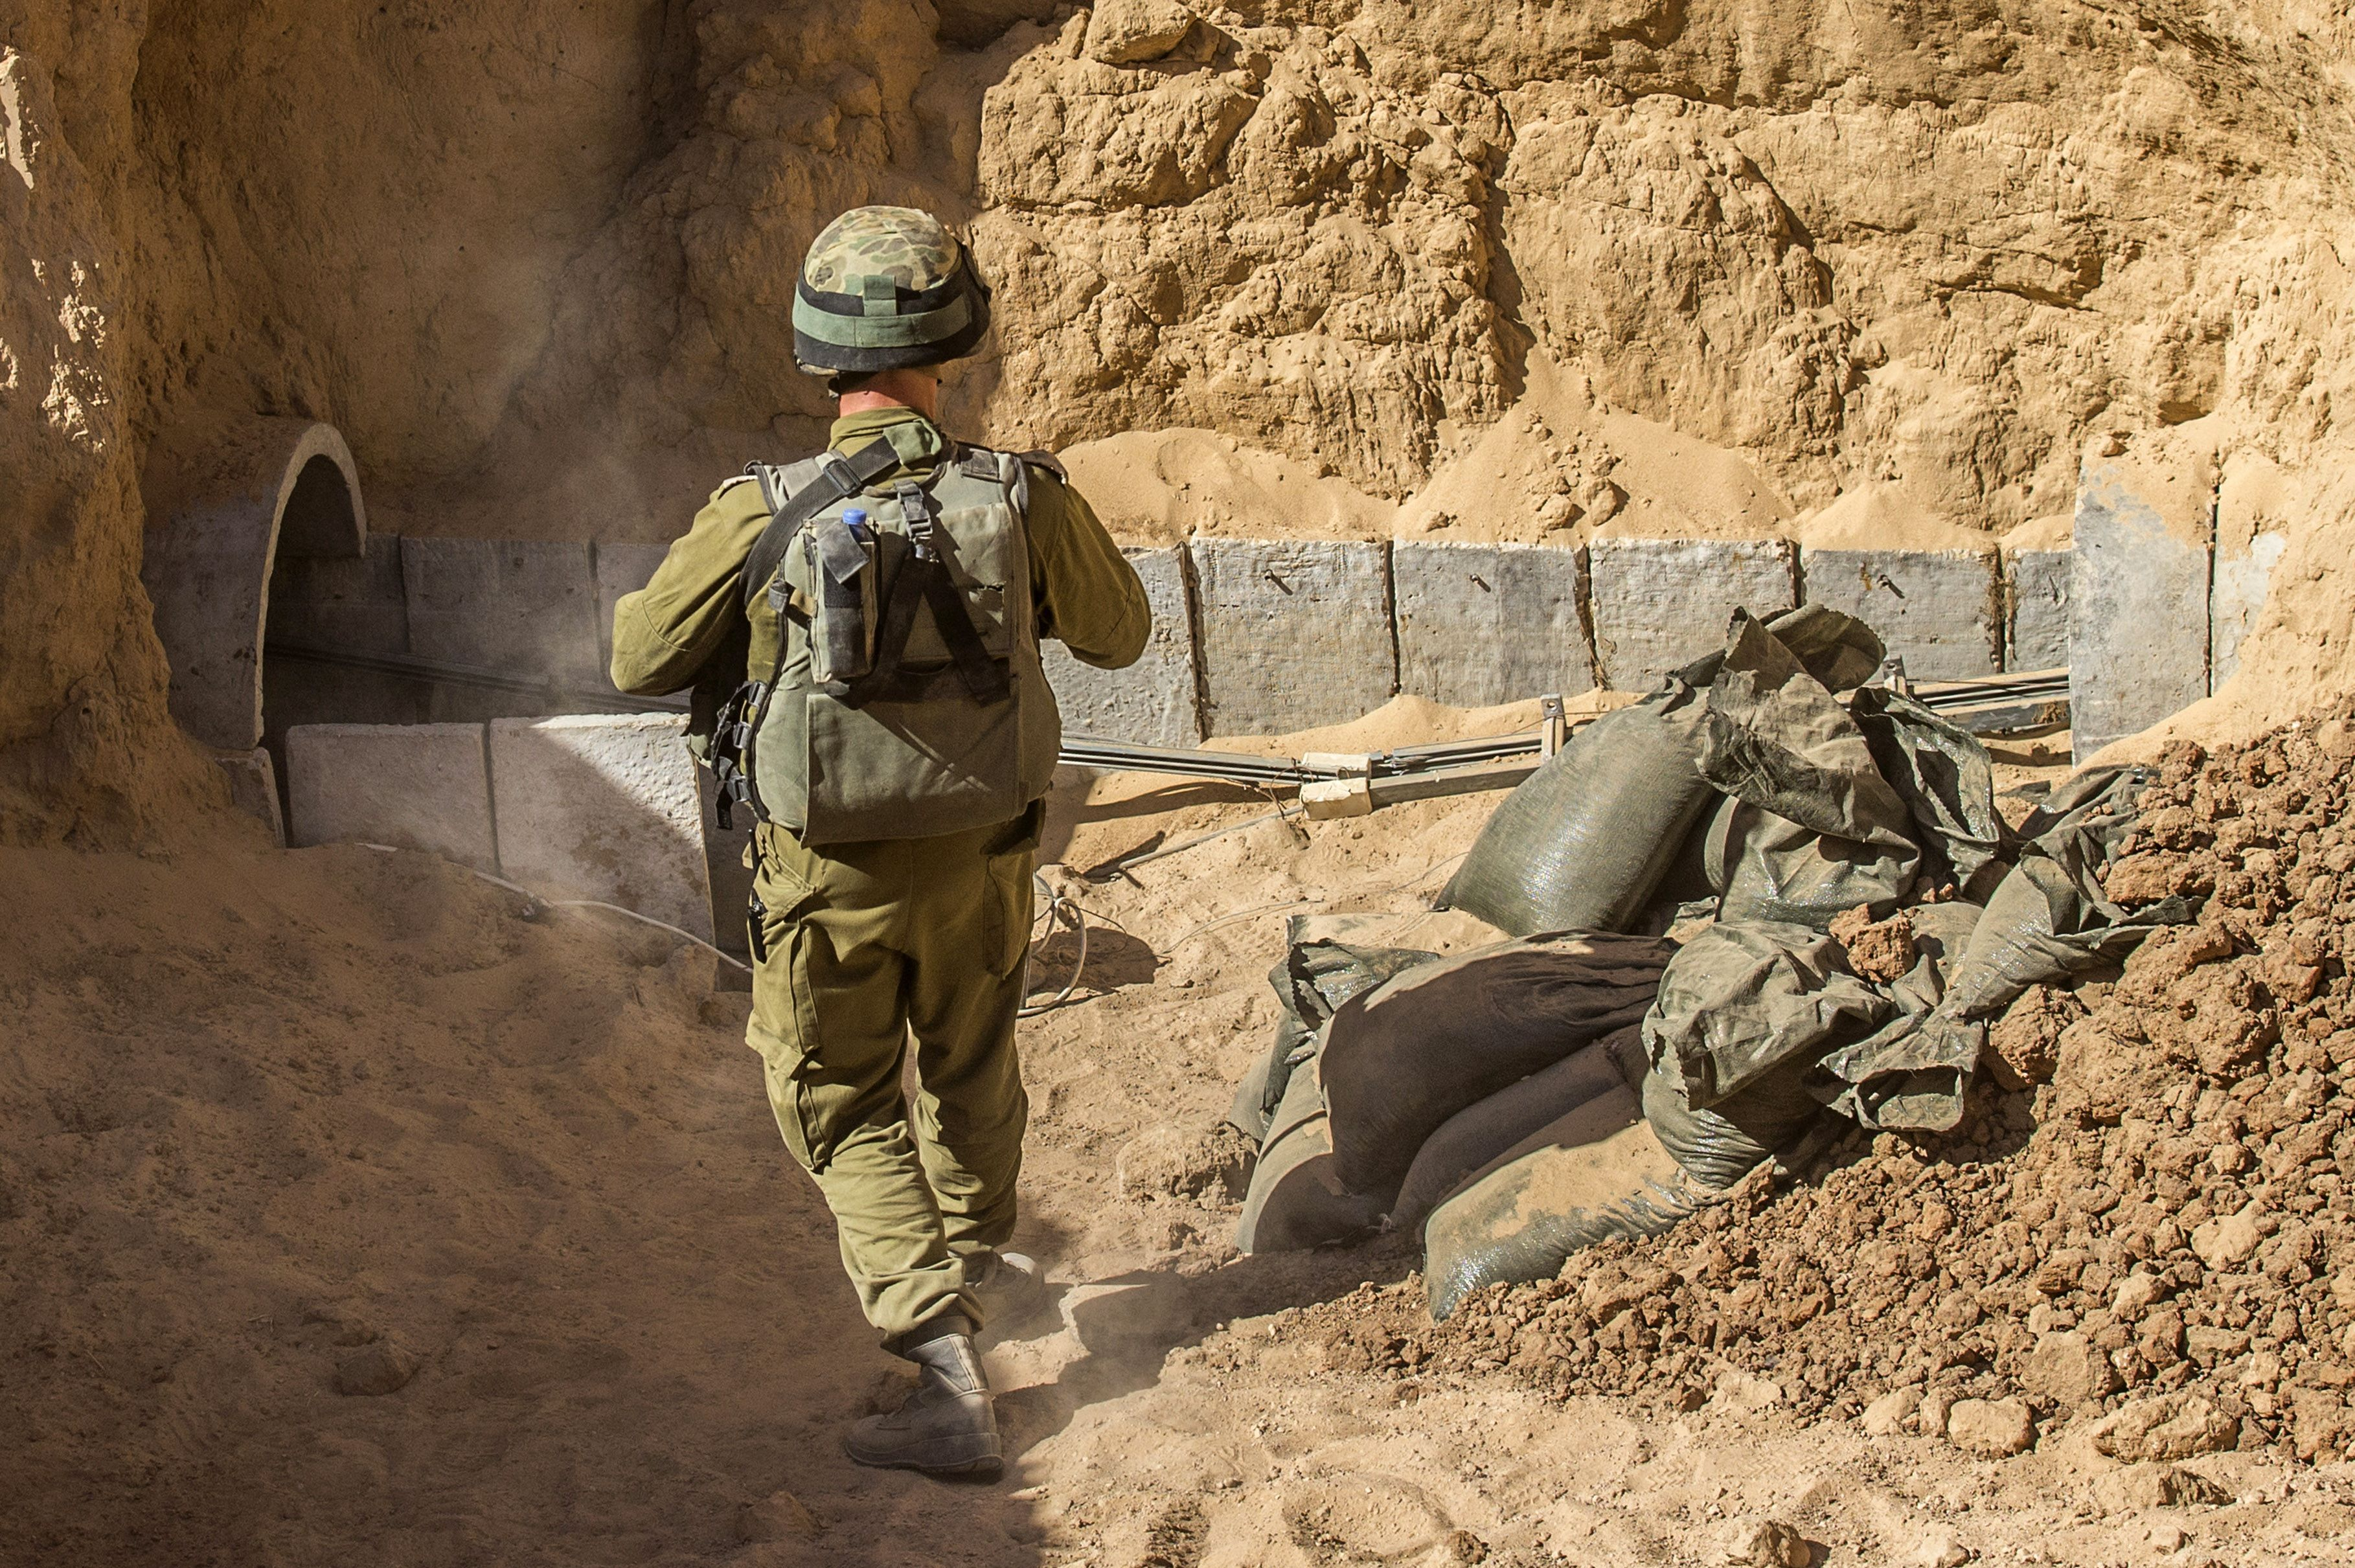 Gaza's Network Of Tunnels Is A Major Hole In Israel's Defenses